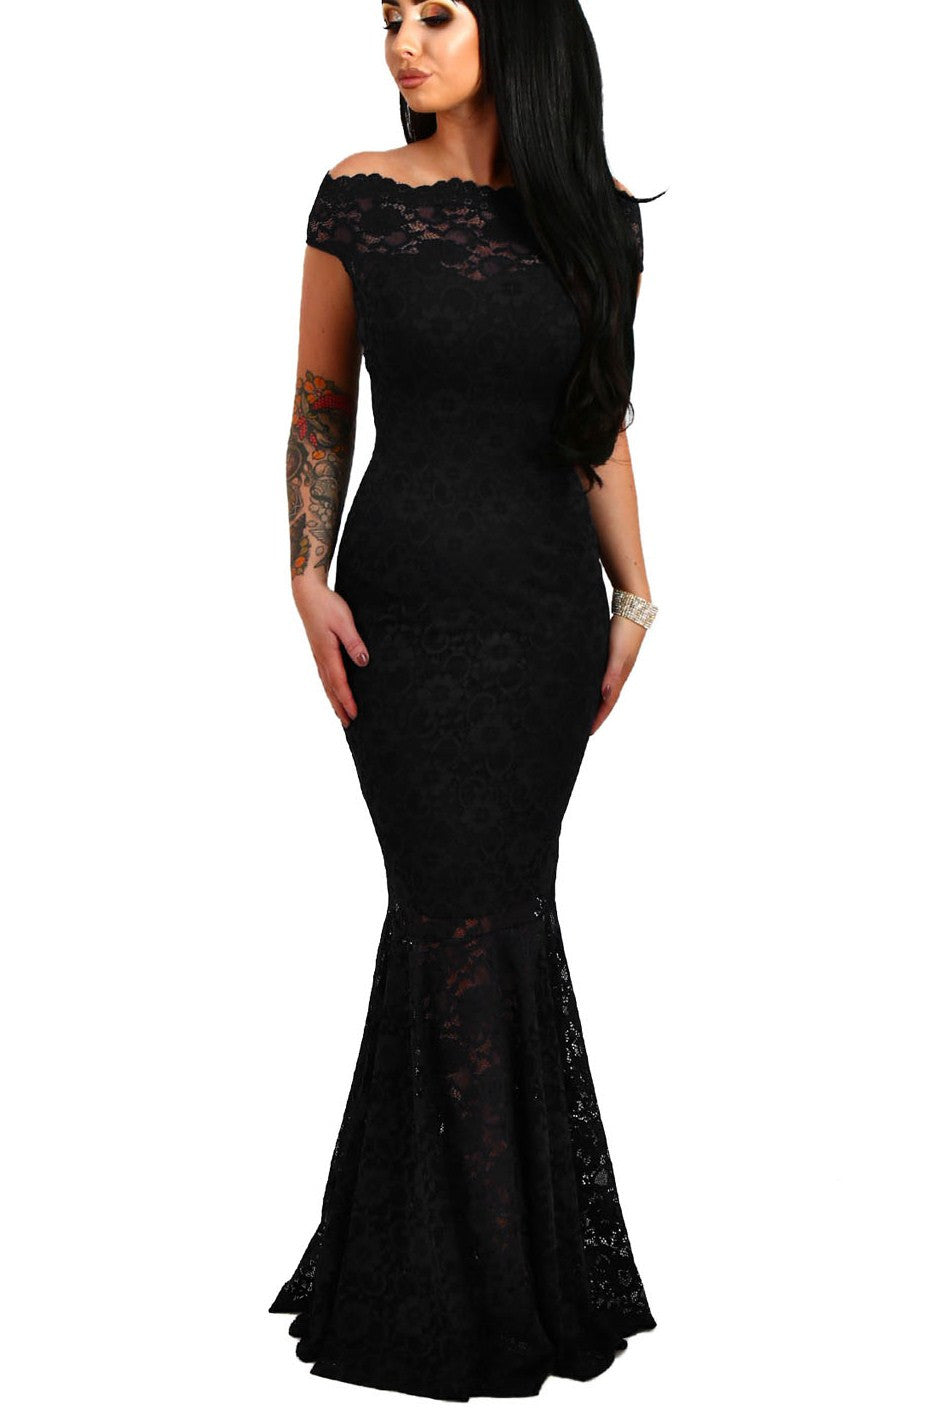 Off The Shoulder Fishtail Black Lace Long Formal Dress